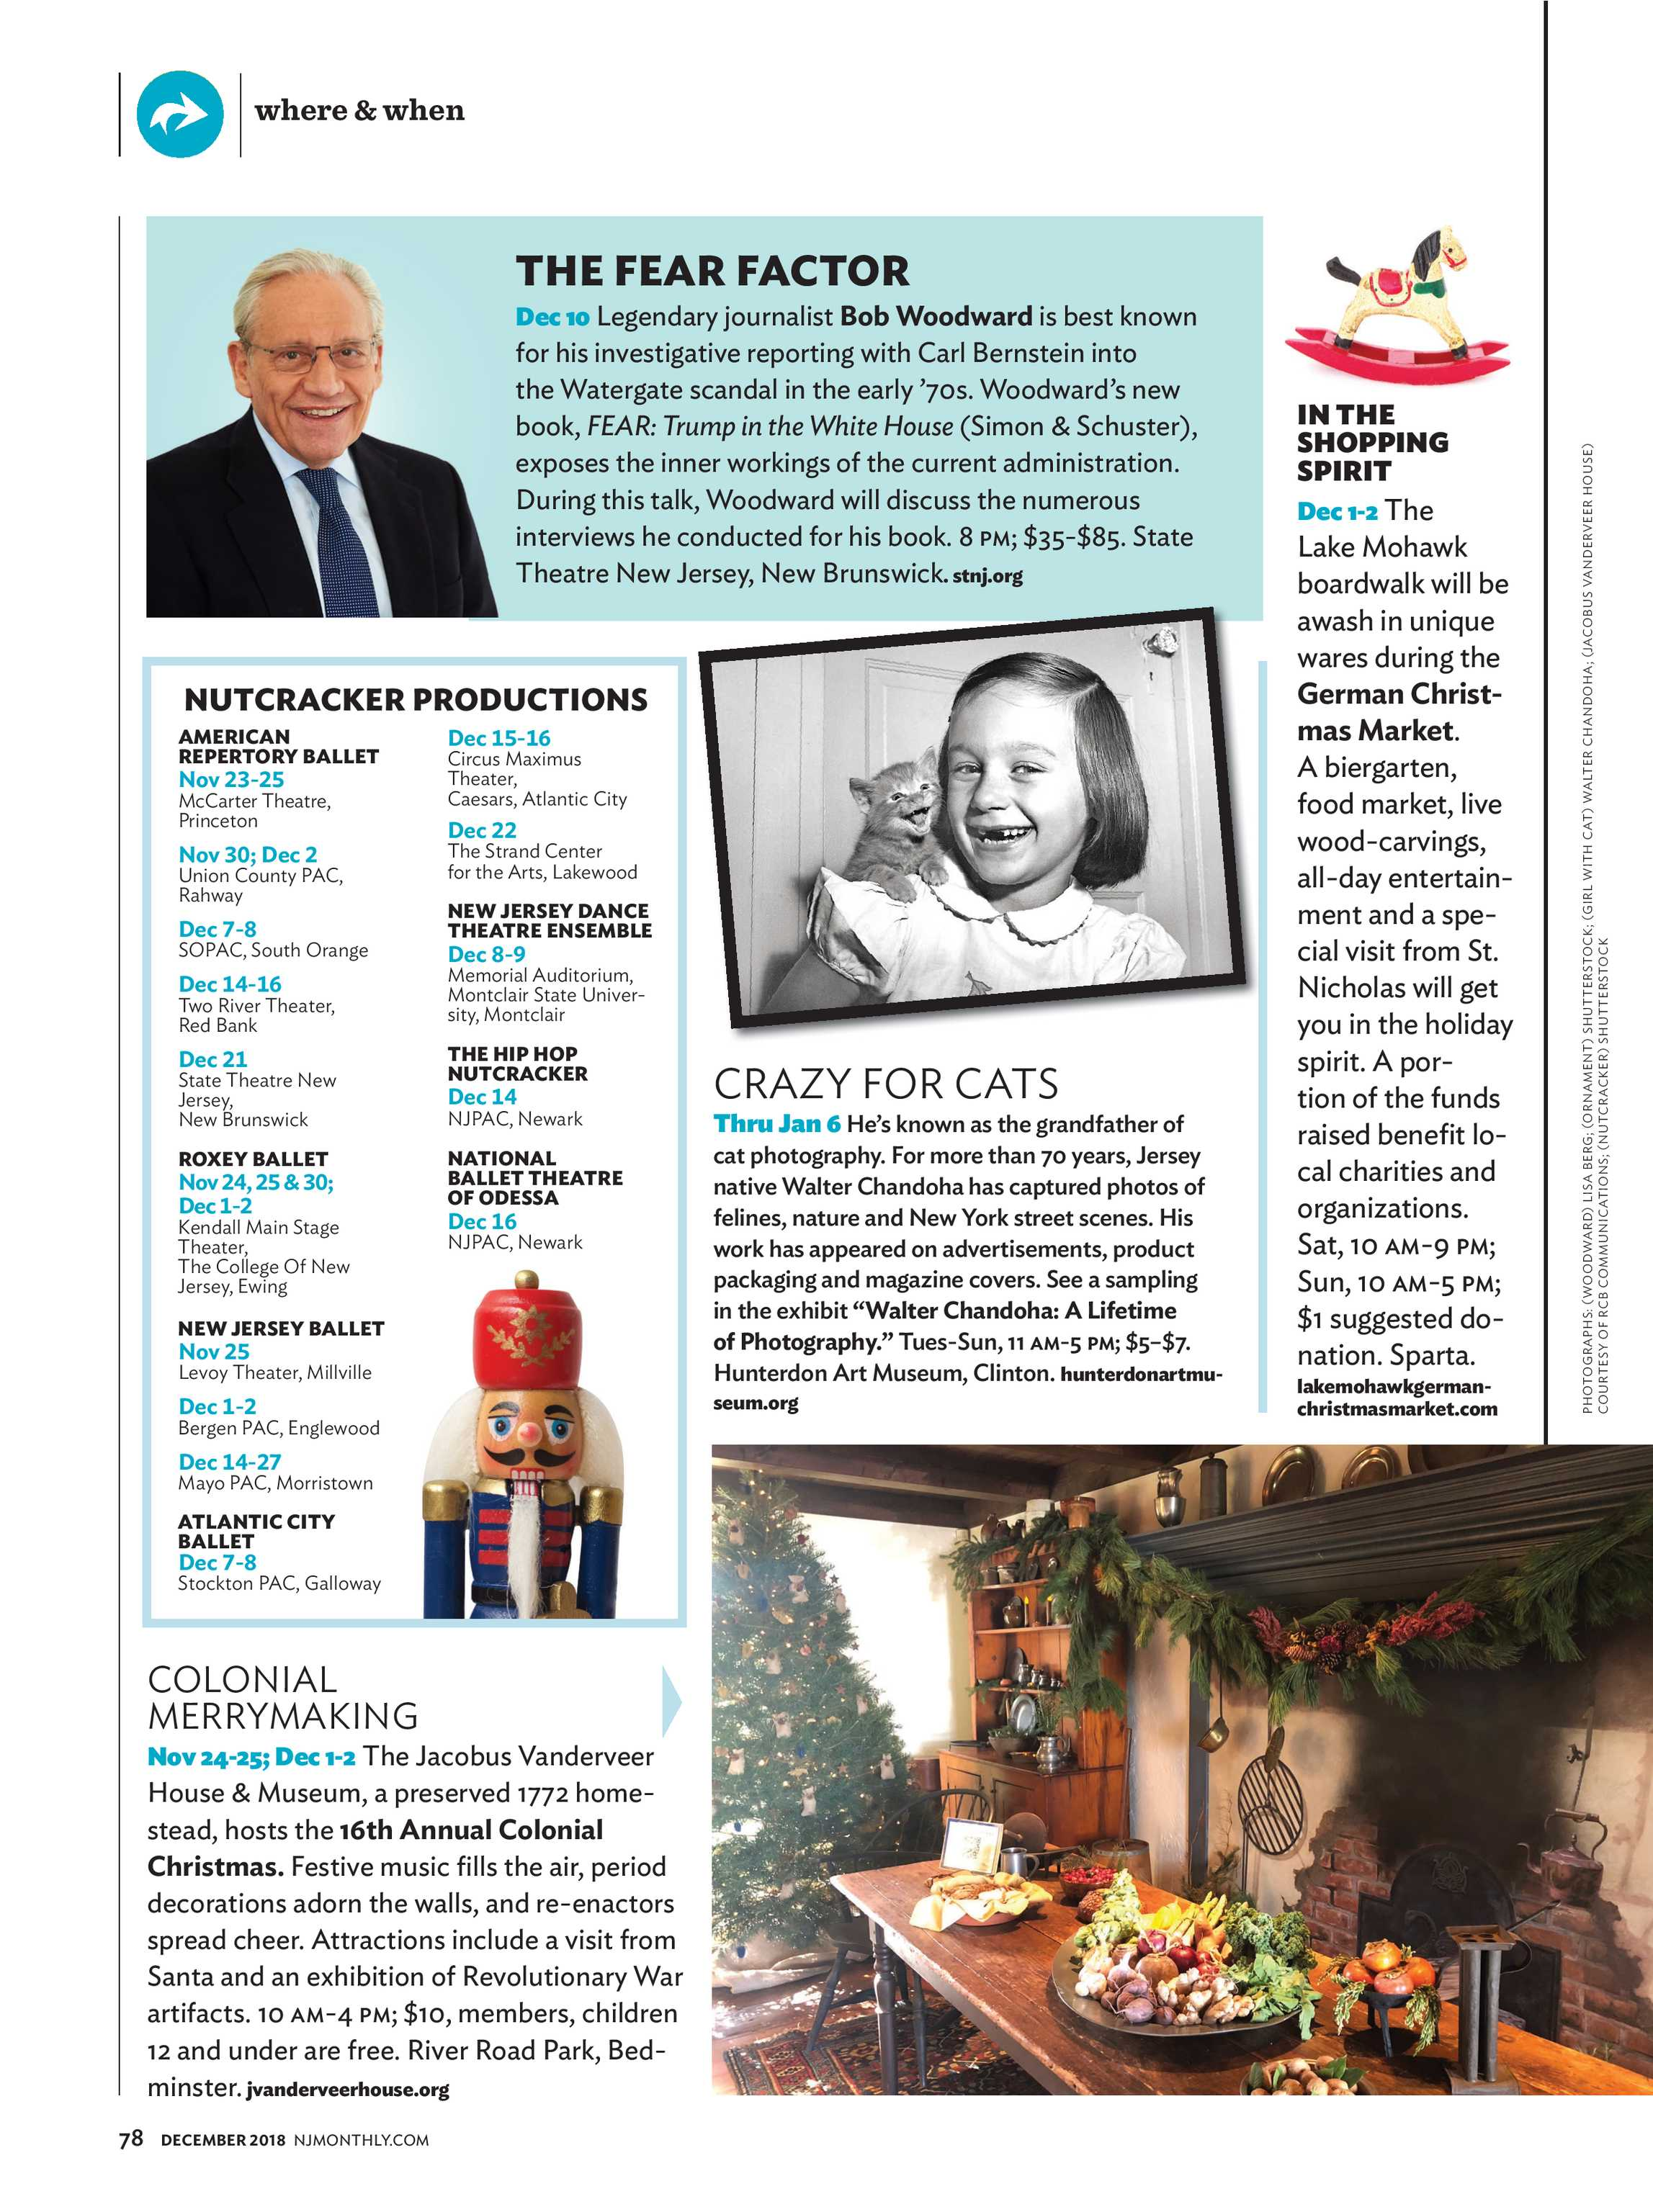 NJ Monthly - December 2018 - page 78